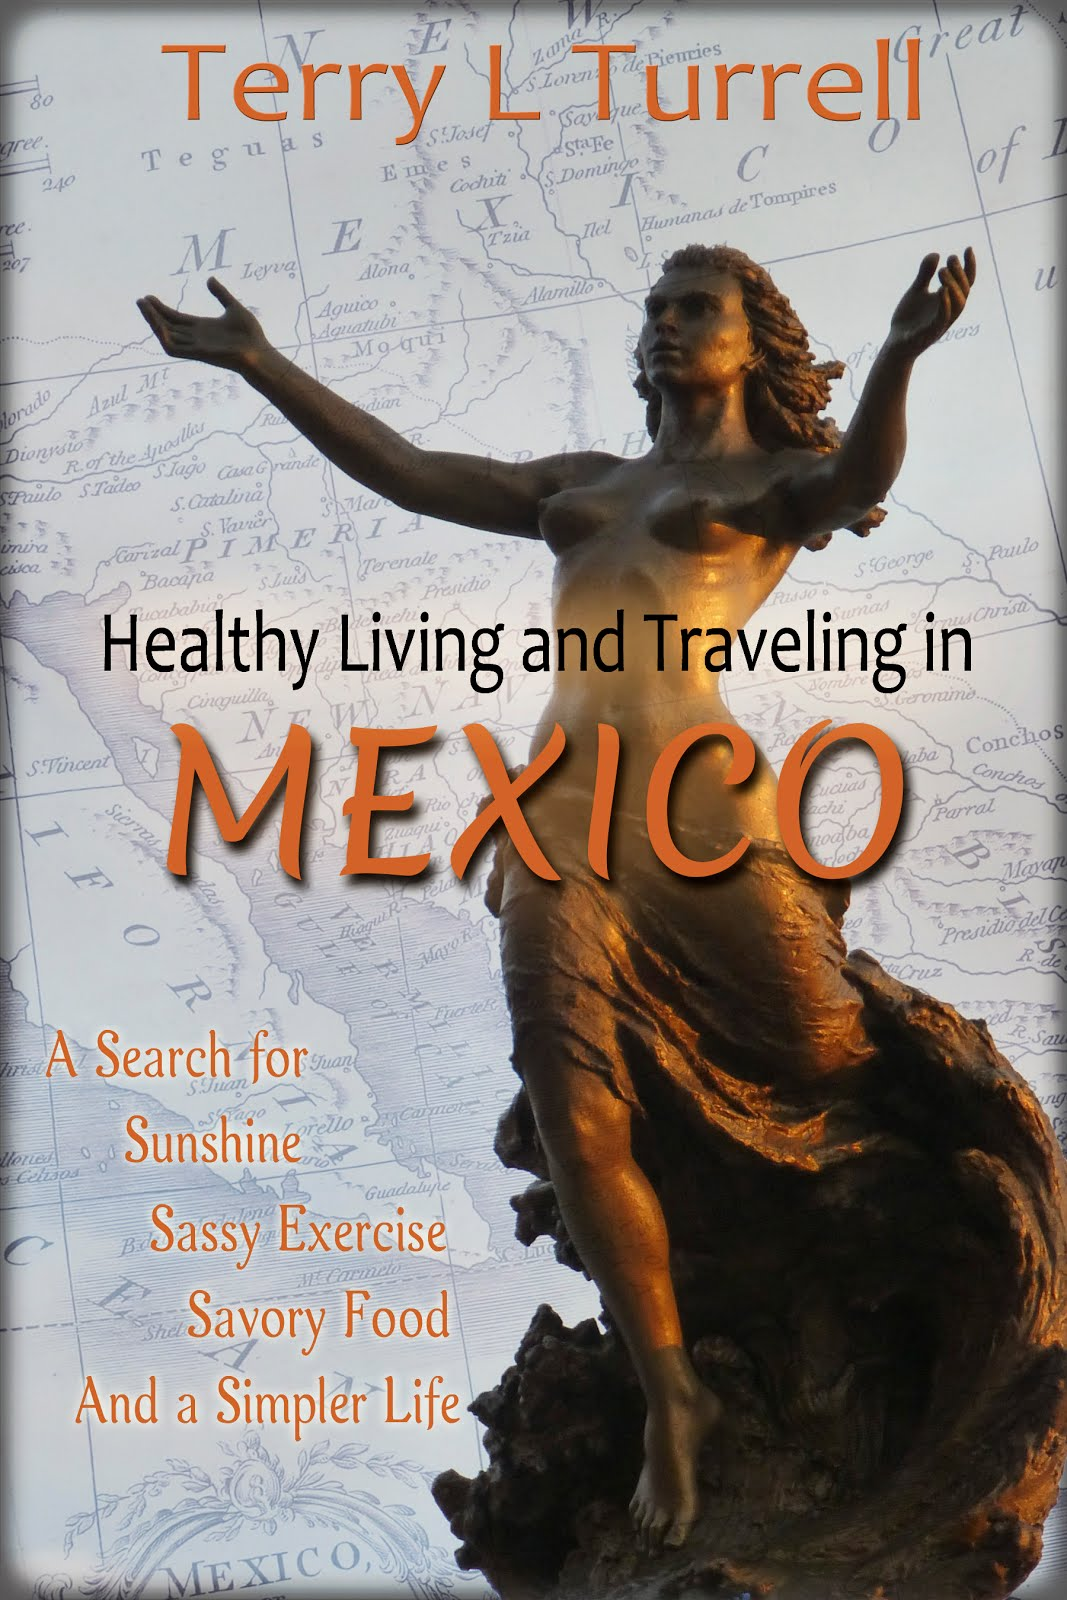 Healthy Living in Mexico eBook #1 Link: